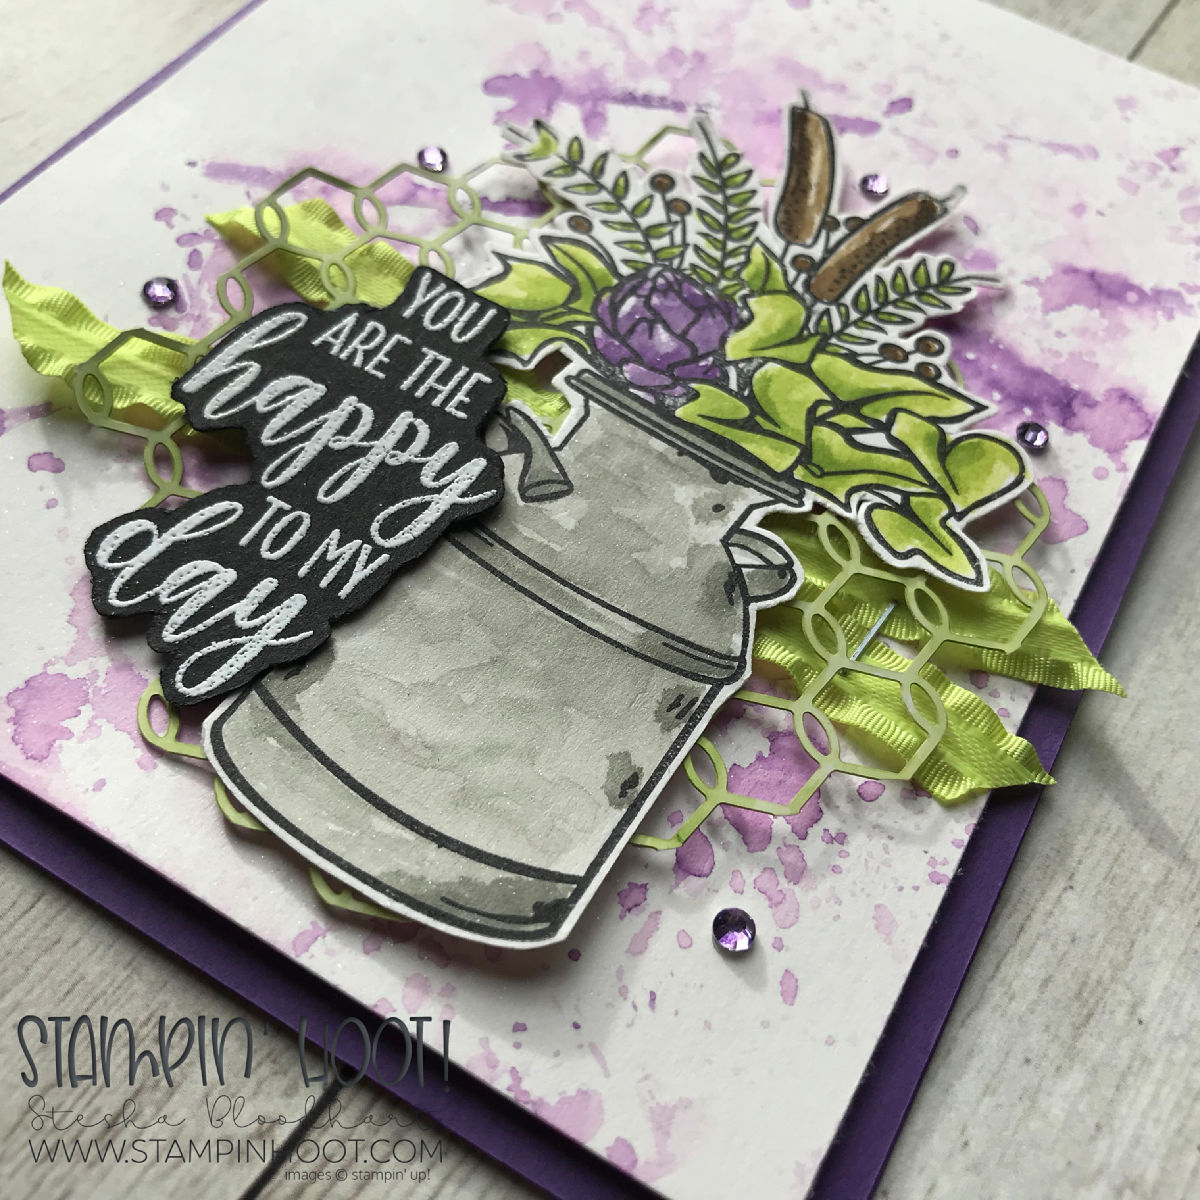 Country Home Stamp Set from the 2018 Holiday Catalog by Stampin' Up! Card created by Stesha Bloodhart, Stampin' Hoot! #steshabloodhart #stampinhoot